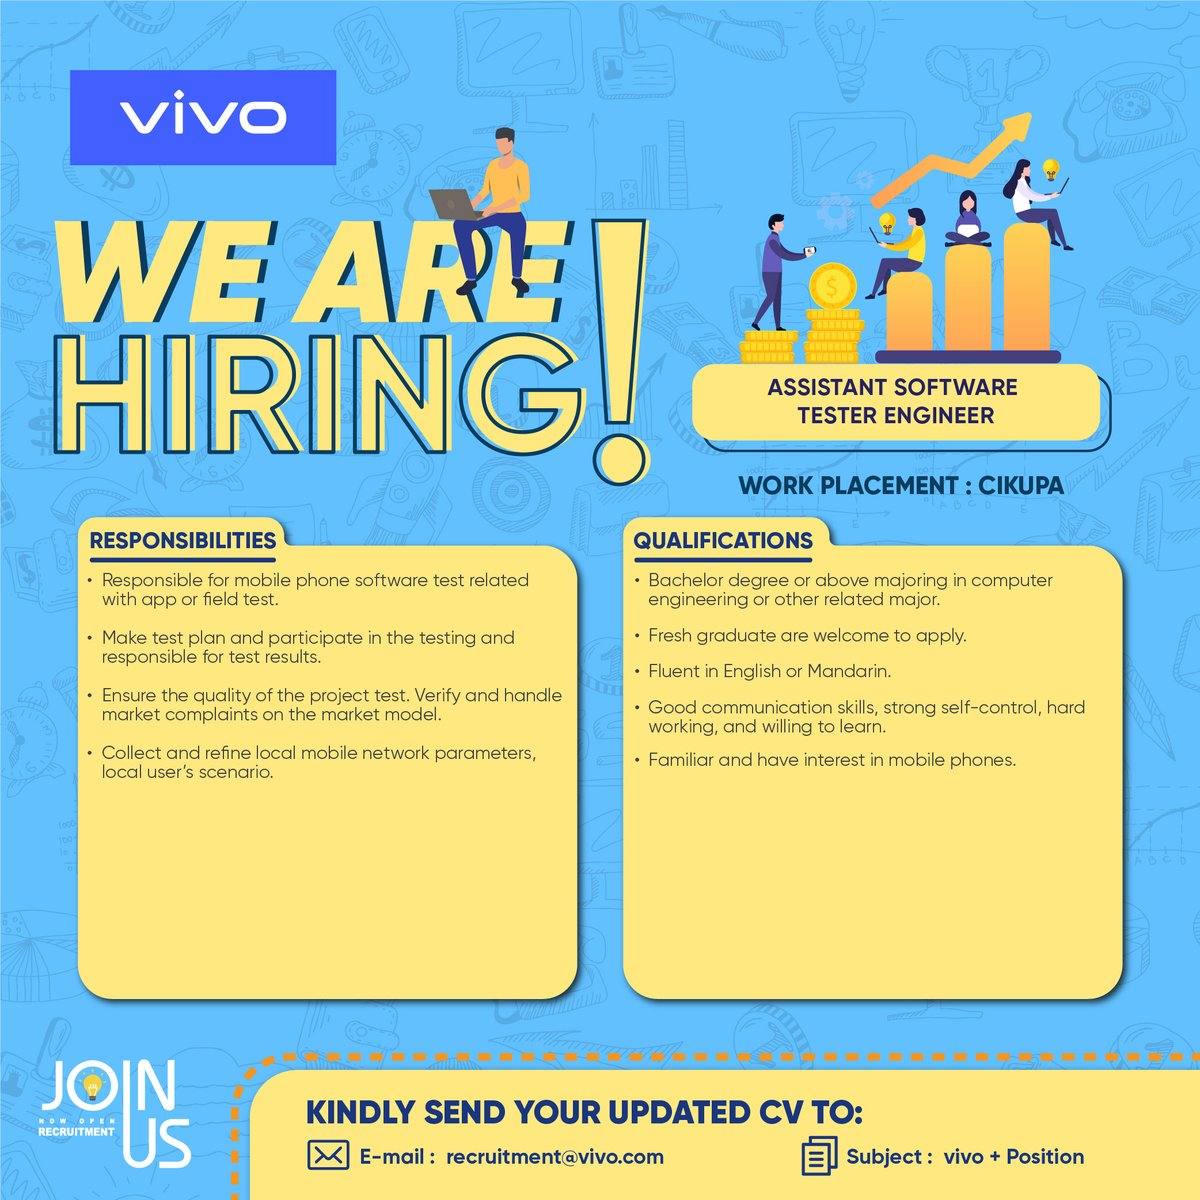 Cdc Unpar On Twitter Job Vacancies Pt Vivo Mobile Indonesia Is Now Hiring For 1 Logistics Staff 2 Assistant Software Tester Engineer 3 Mandarin Interpreter Interested See Poster Below For Further